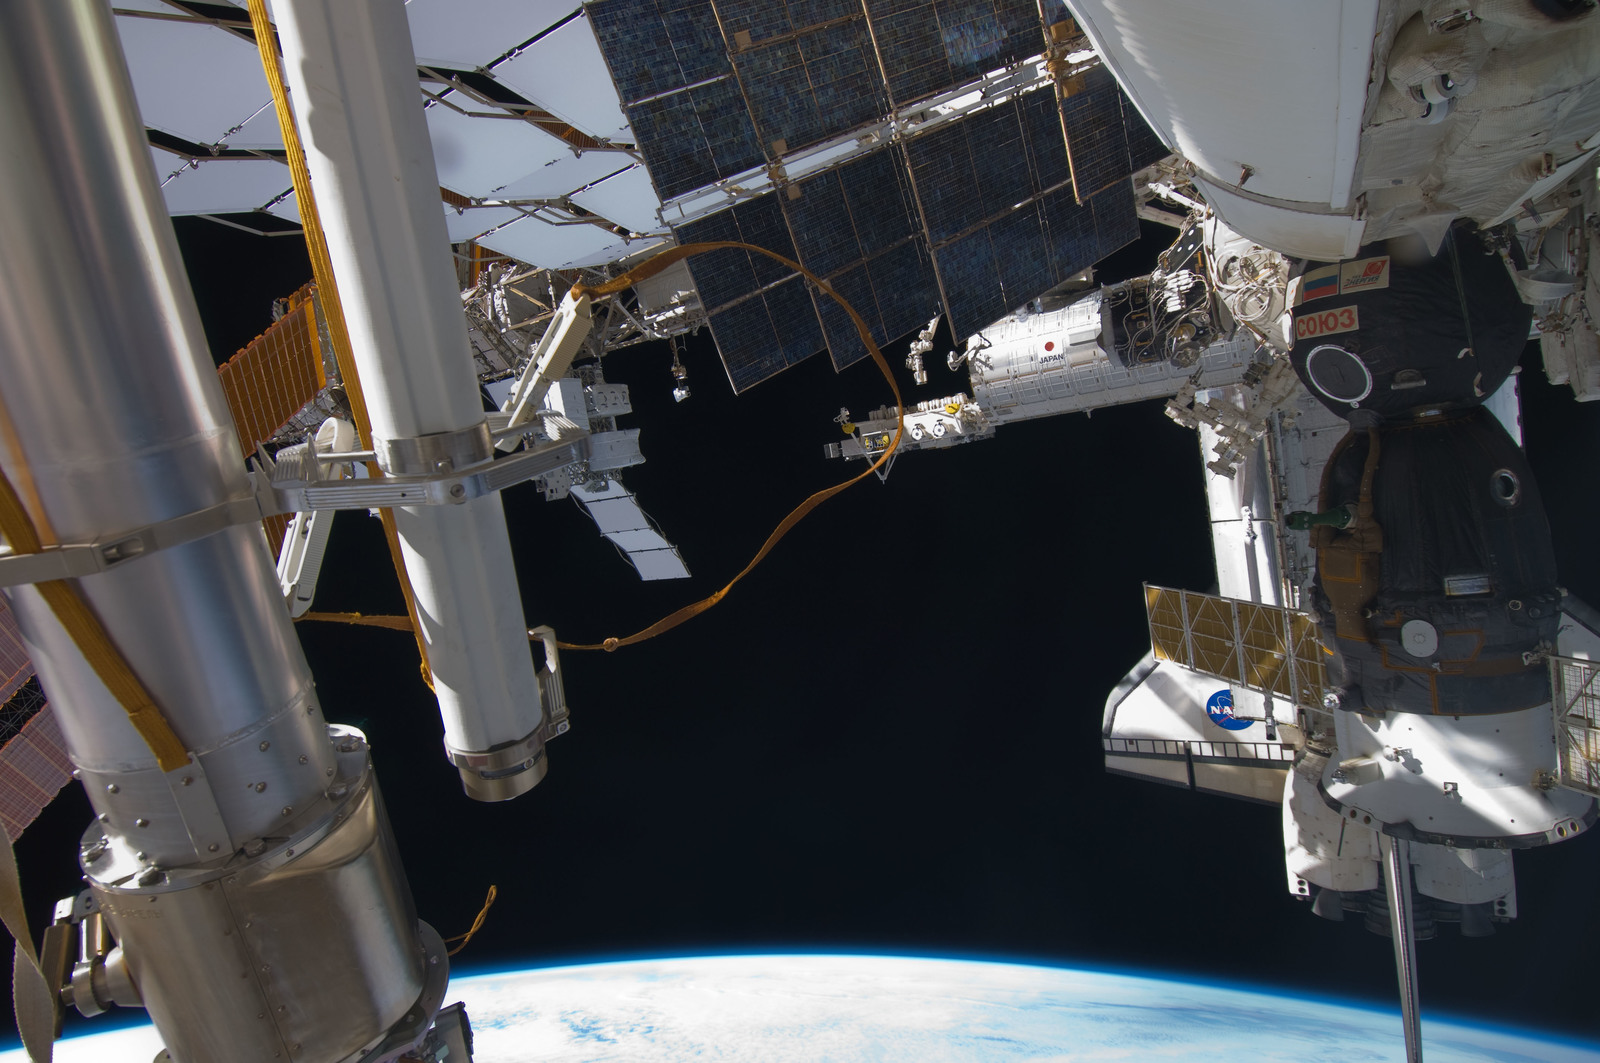 S129E007711 - STS-129 - Exterior view of the ISS taken during STS-129/Expedition 21 Joint Operations